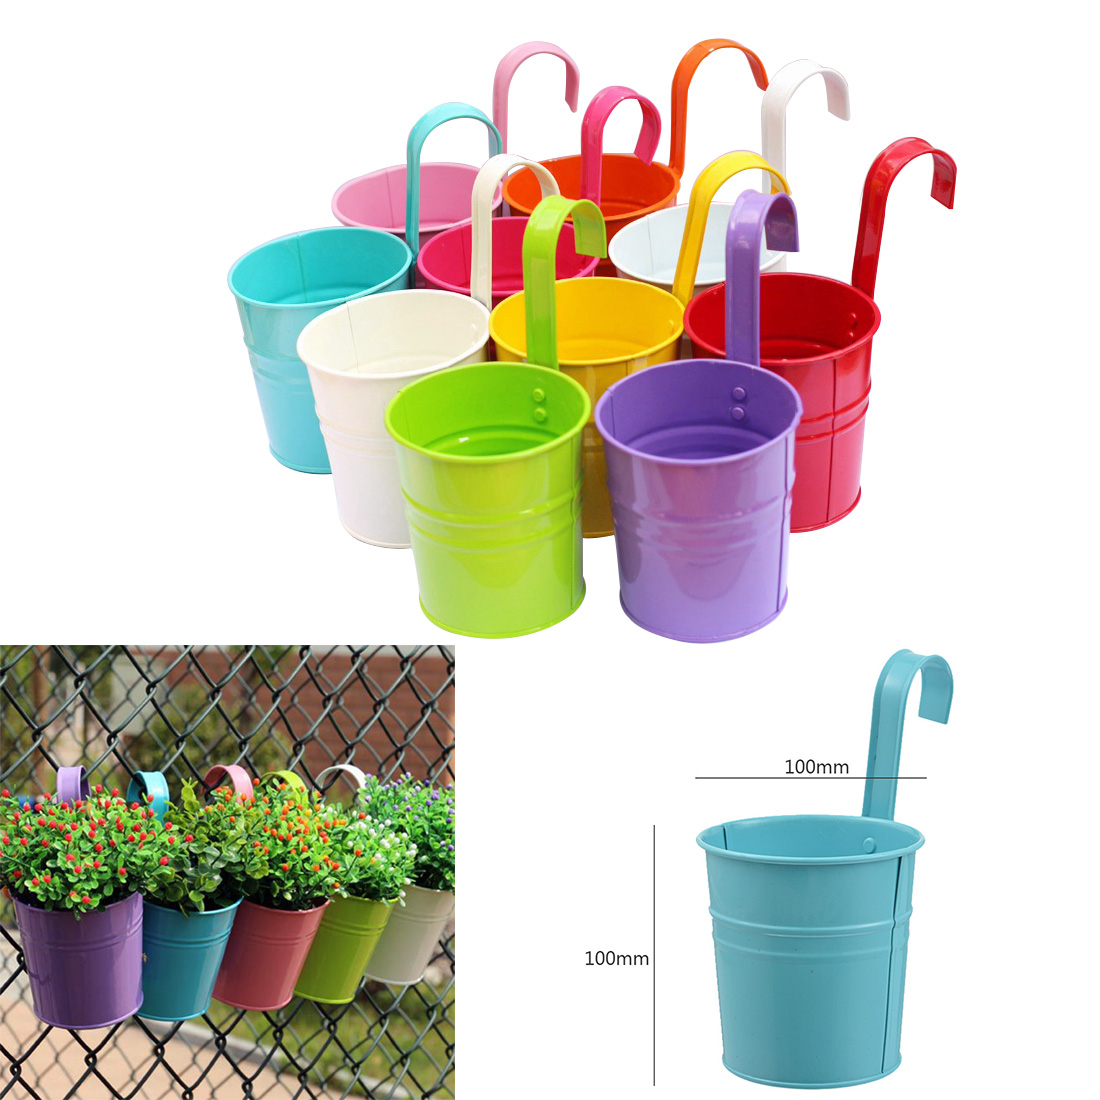 10 Colors Hanging Flower Pots  Hook Wall Pots Garden Pots Balcony Planters Metal Bucket Flower Holders Home Decor High Quality